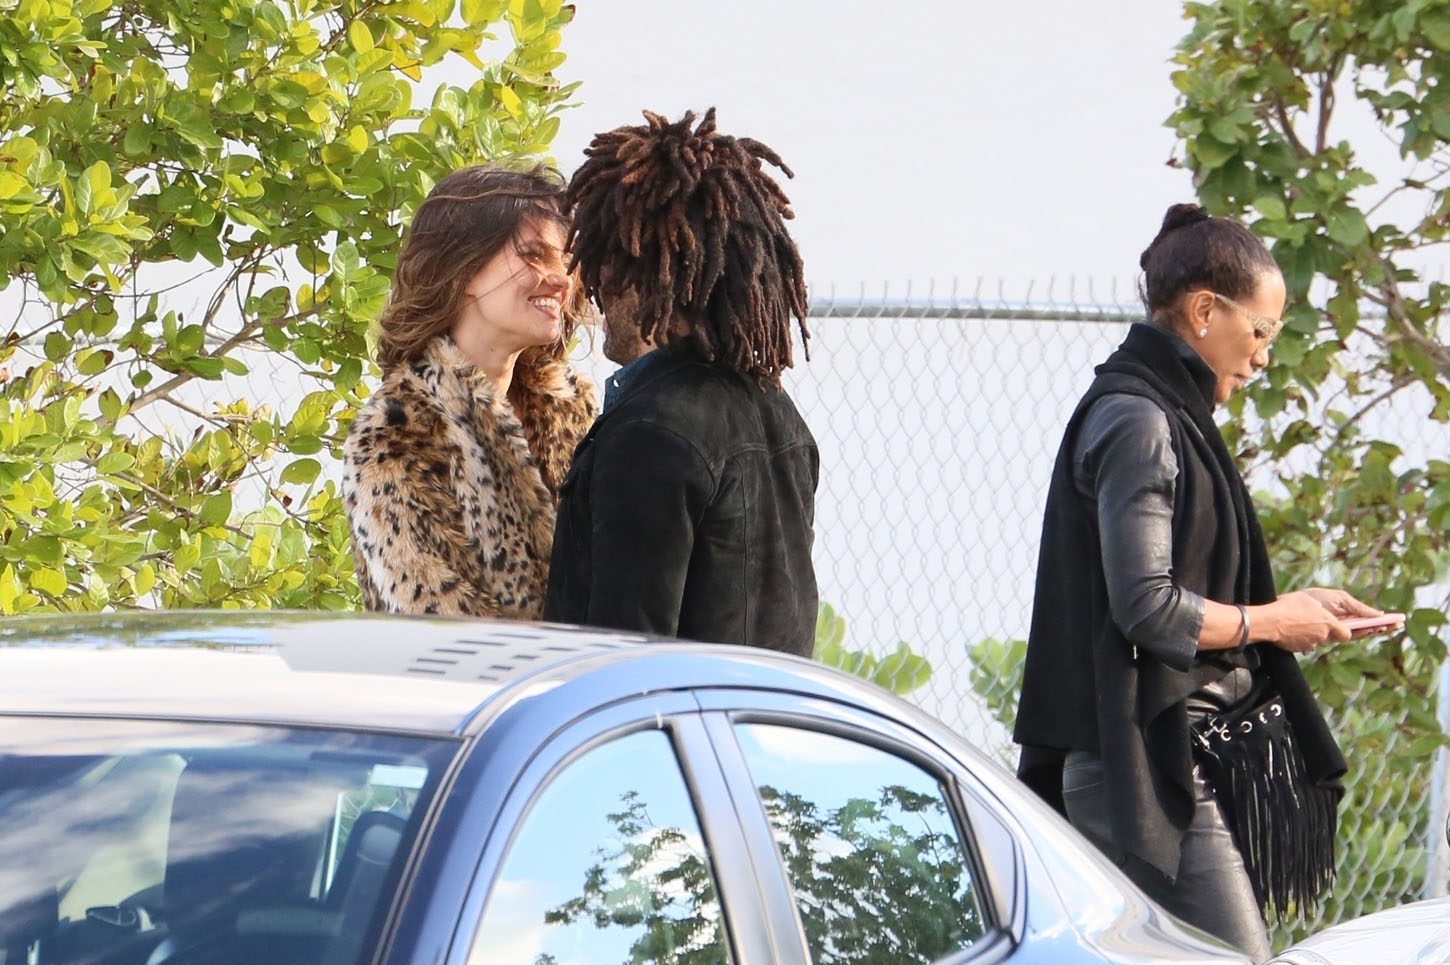 Miami Beach, FL  - *EXCLUSIVE*  - Lenny Kravitz enjoys a day out with his new girlfriend. The new couple lunch with Barbara Becker (Boris Becker's ex wife). The new couple look happy as they kiss and hug while out for a stroll.  Pictured: Lenny Kravitz  BACKGRID USA 7 JANUARY 2018, Image: 359503010, License: Rights-managed, Restrictions: , Model Release: no, Credit line: Profimedia, AKM-GSI